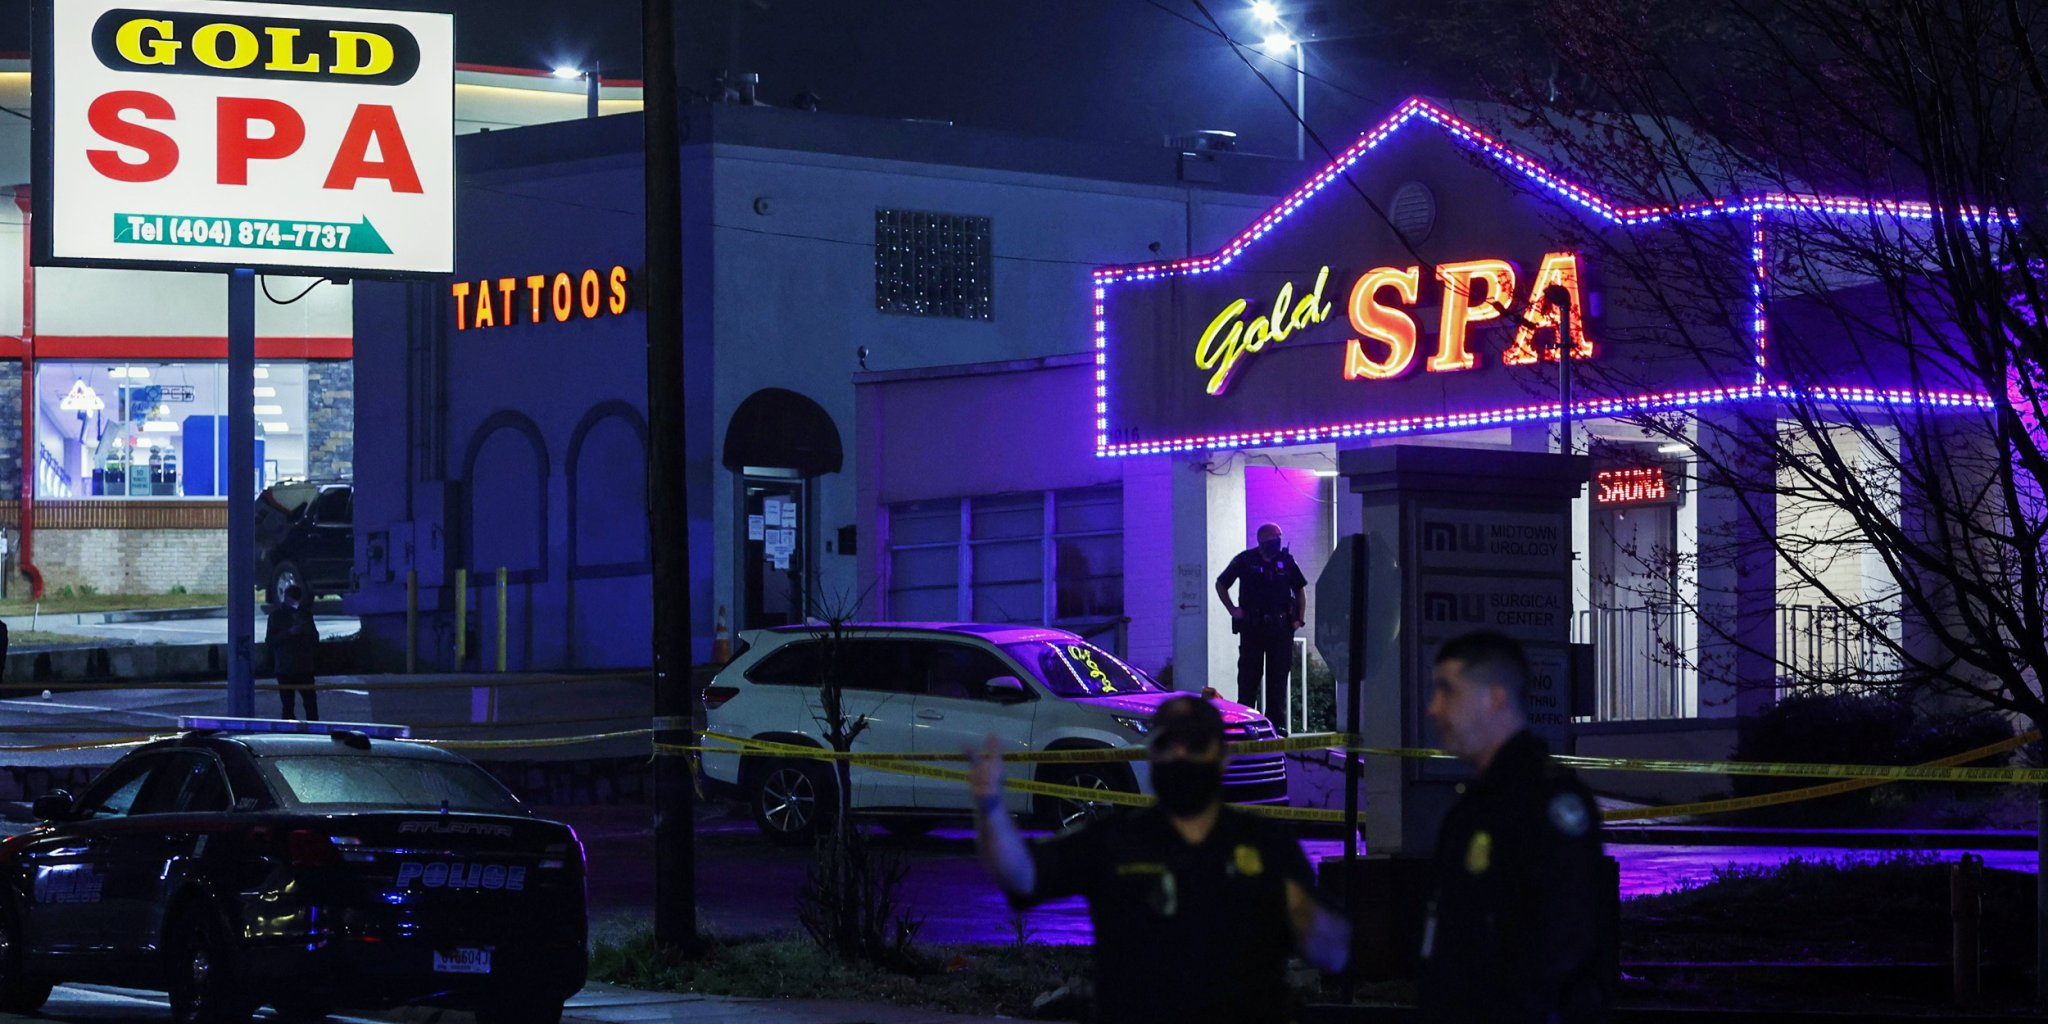 Eight people killed in Atlanta-area shootings: Latest news and reaction